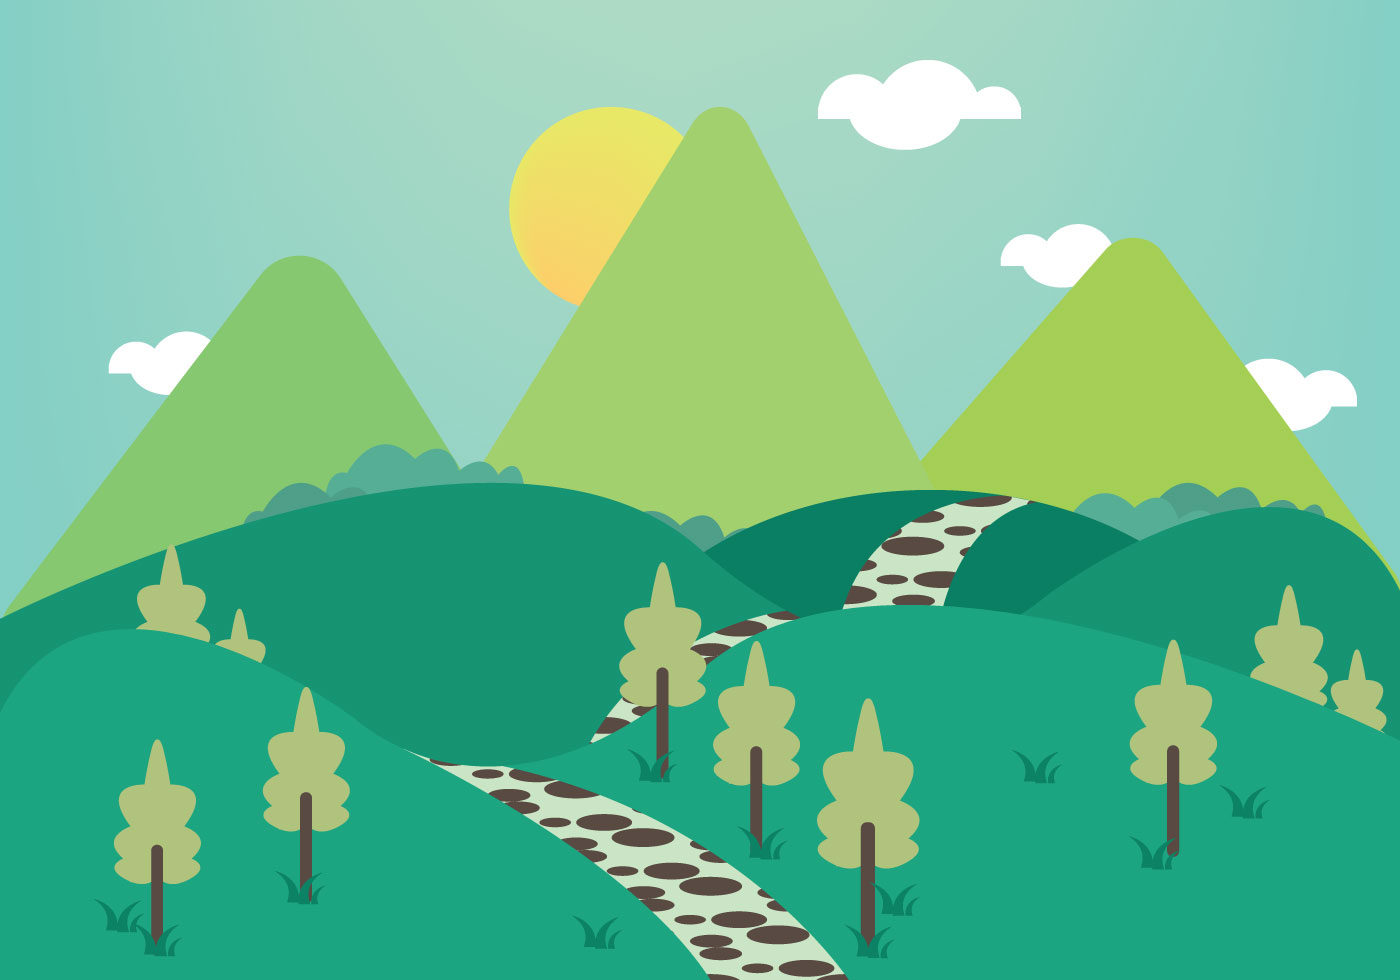 Free Stone Path Mountains Illustration Vector - Download Free Vector ...